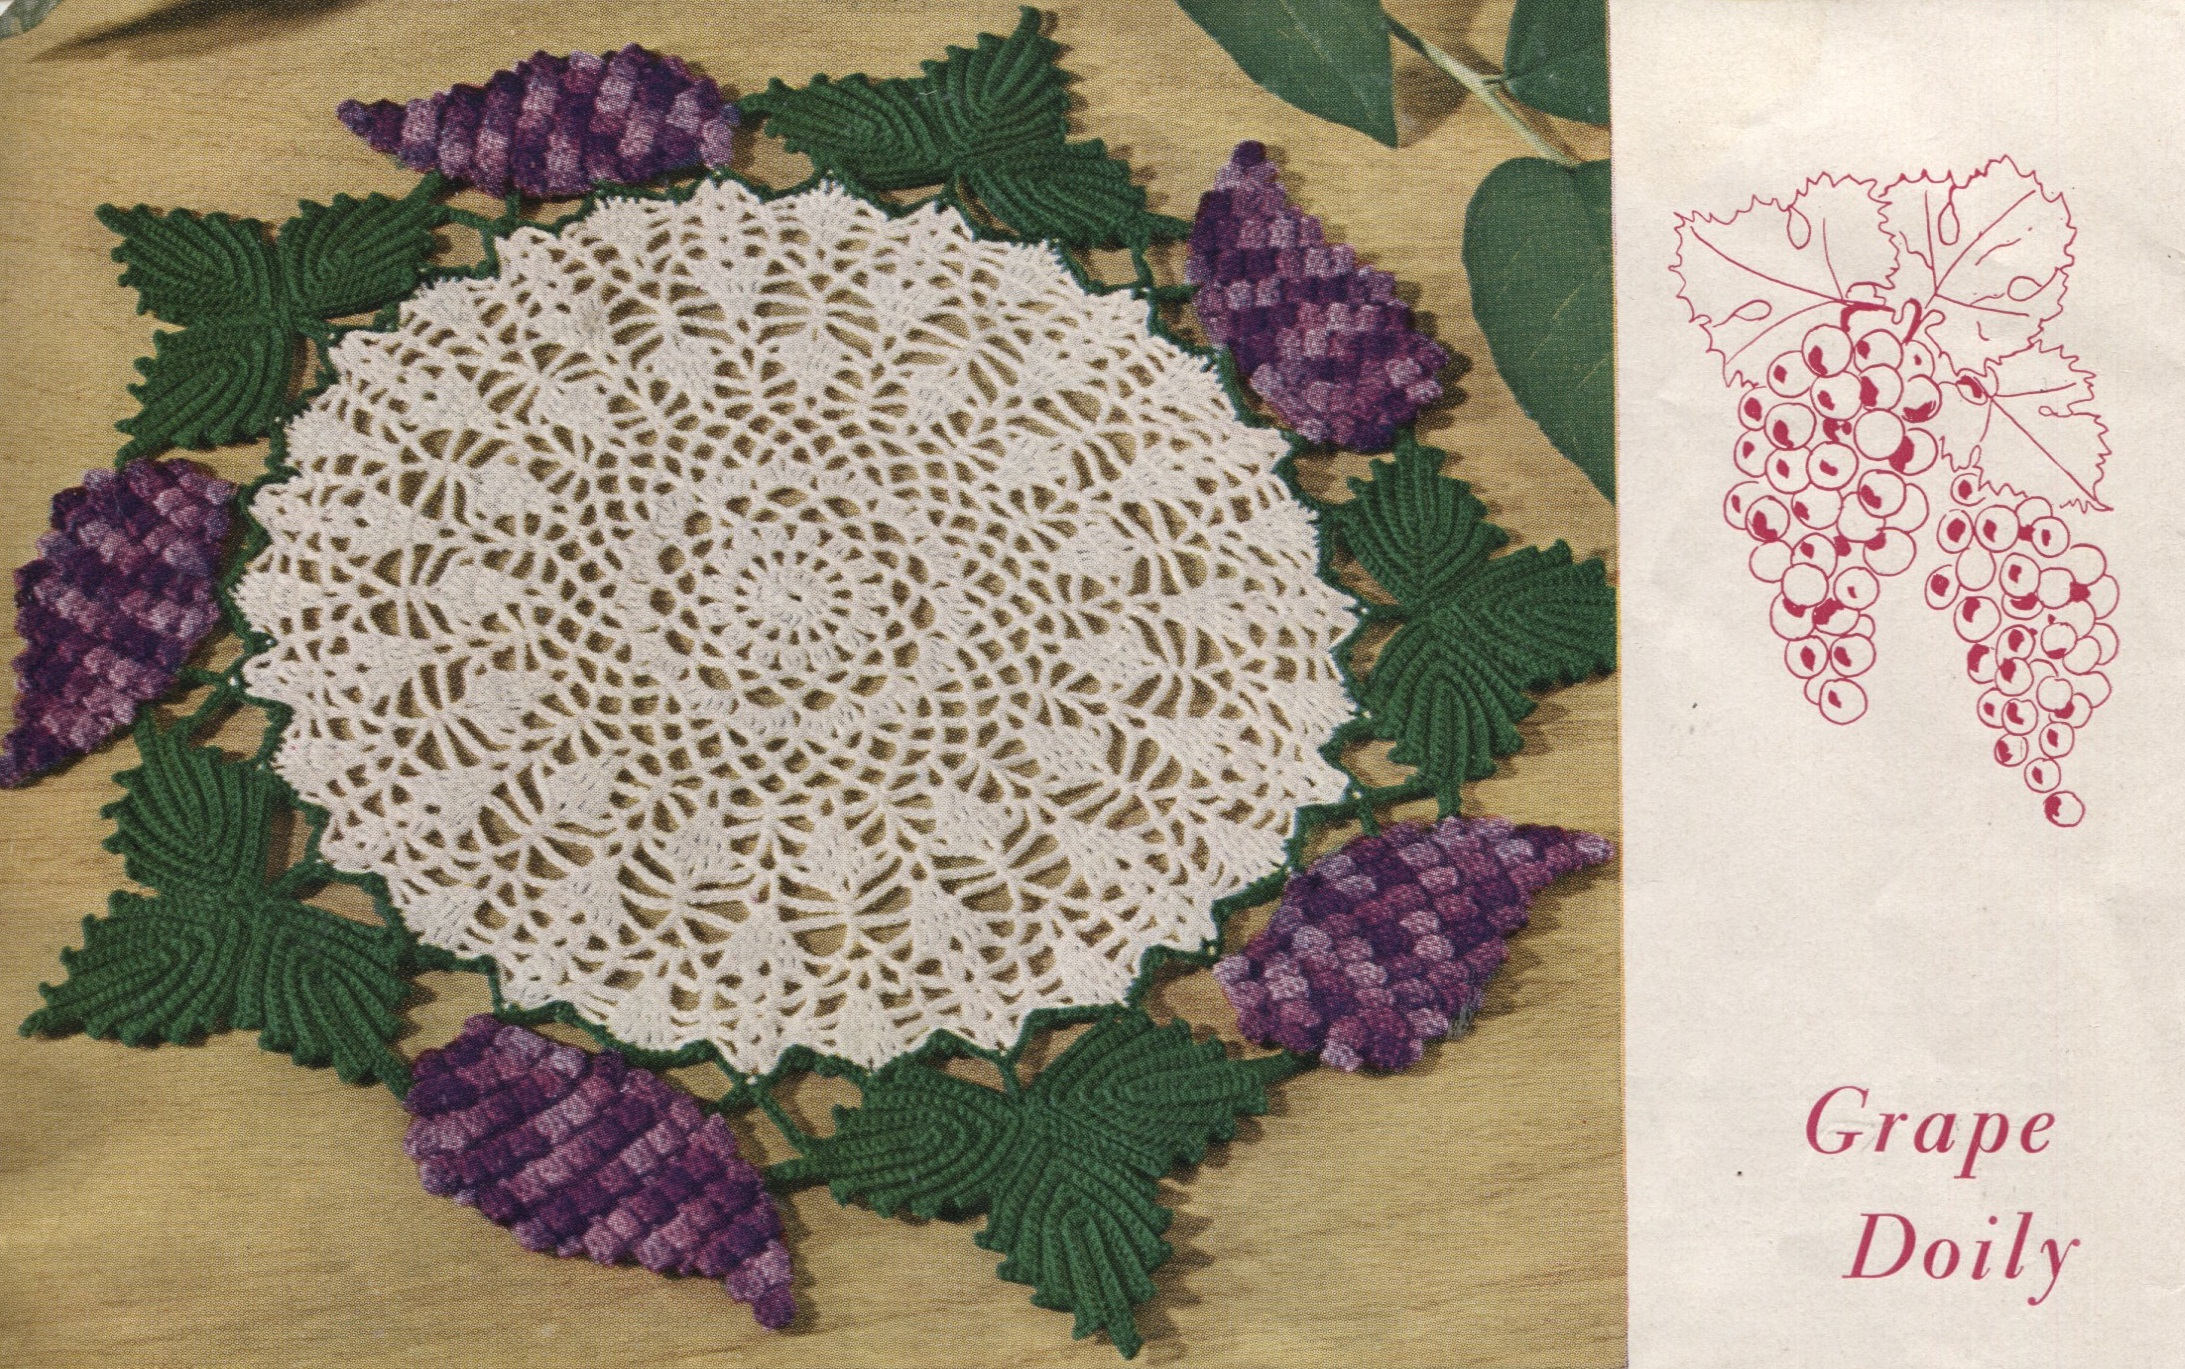 Grape Doily Crochet Pattern and Grape Bottle Cap Hot Plate Mat ...